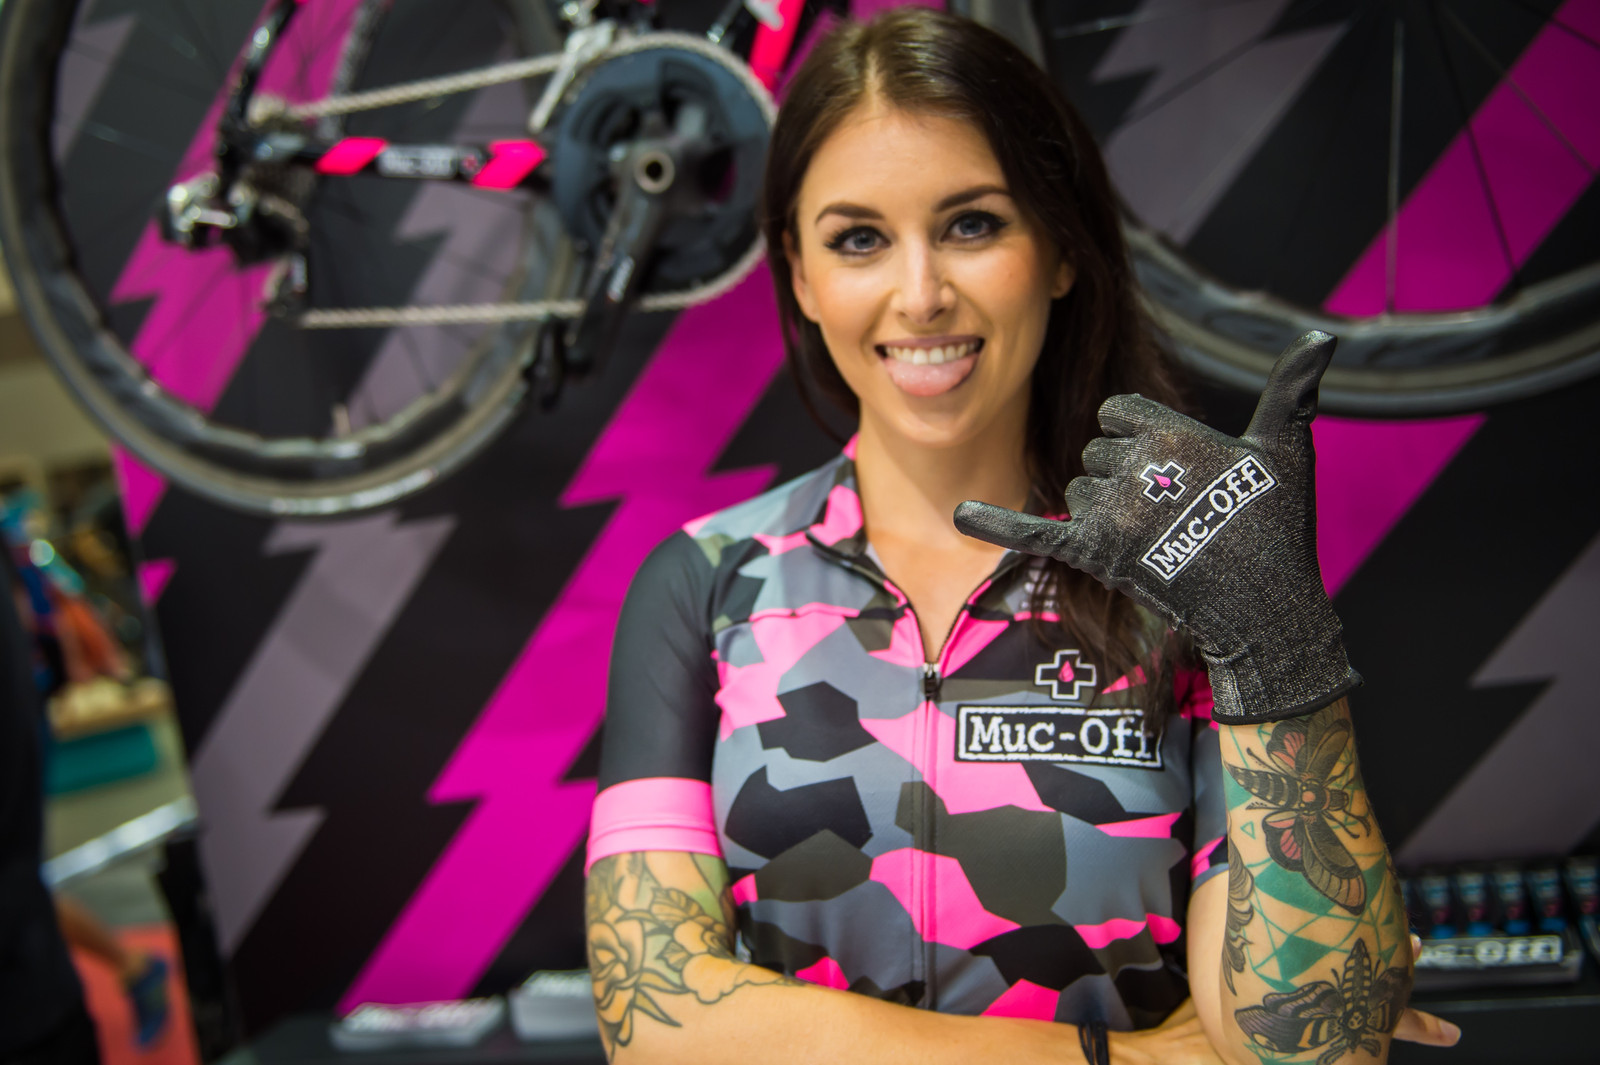 Muc Off Cleaning Protecting And Lubing Your Bike